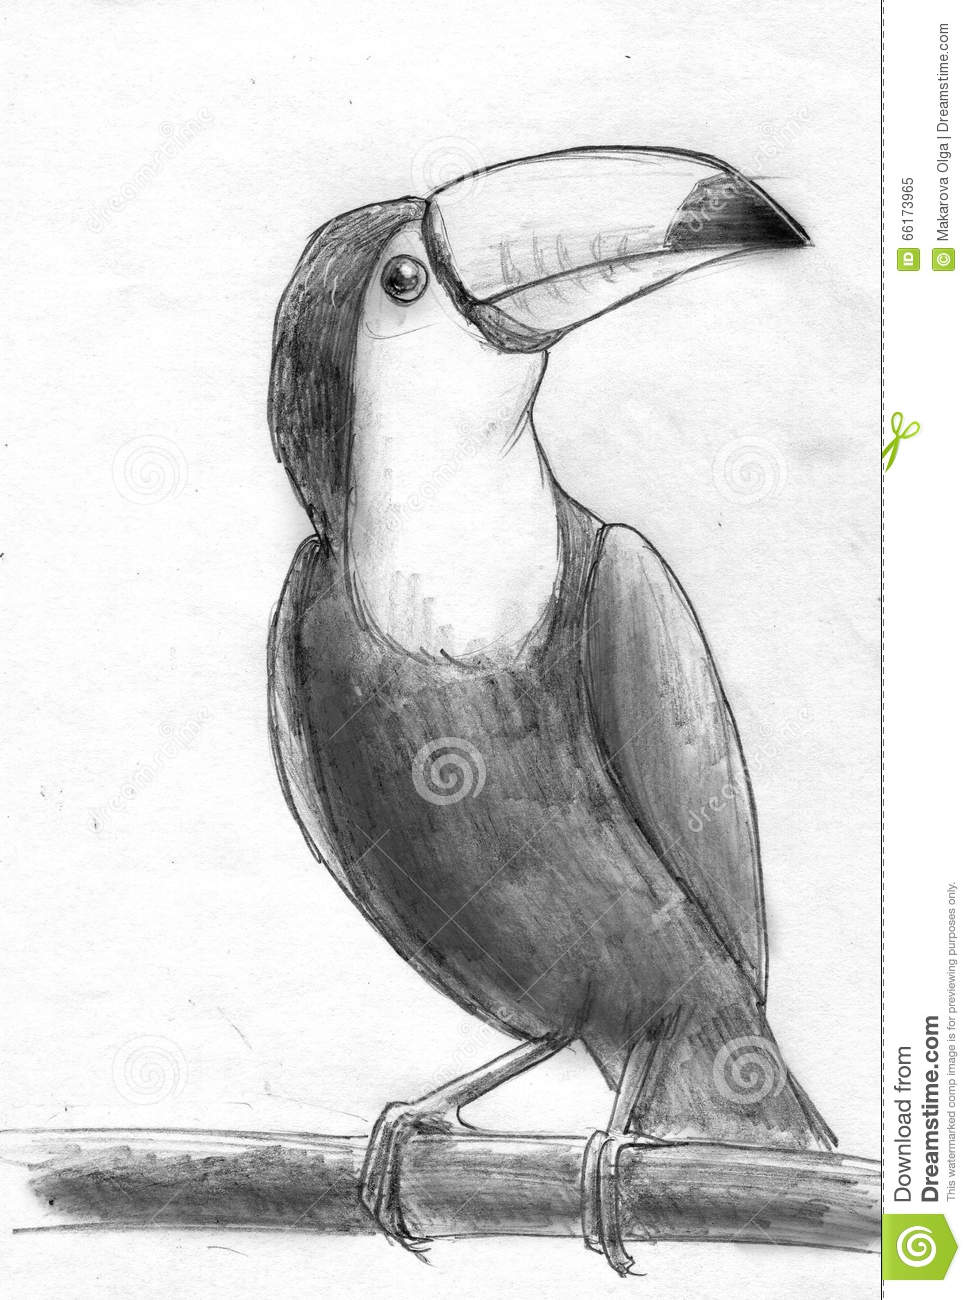 Bird pencil sketch stock illustrations 3156 bird pencil sketch stock illustrations vectors clipart dreamstime